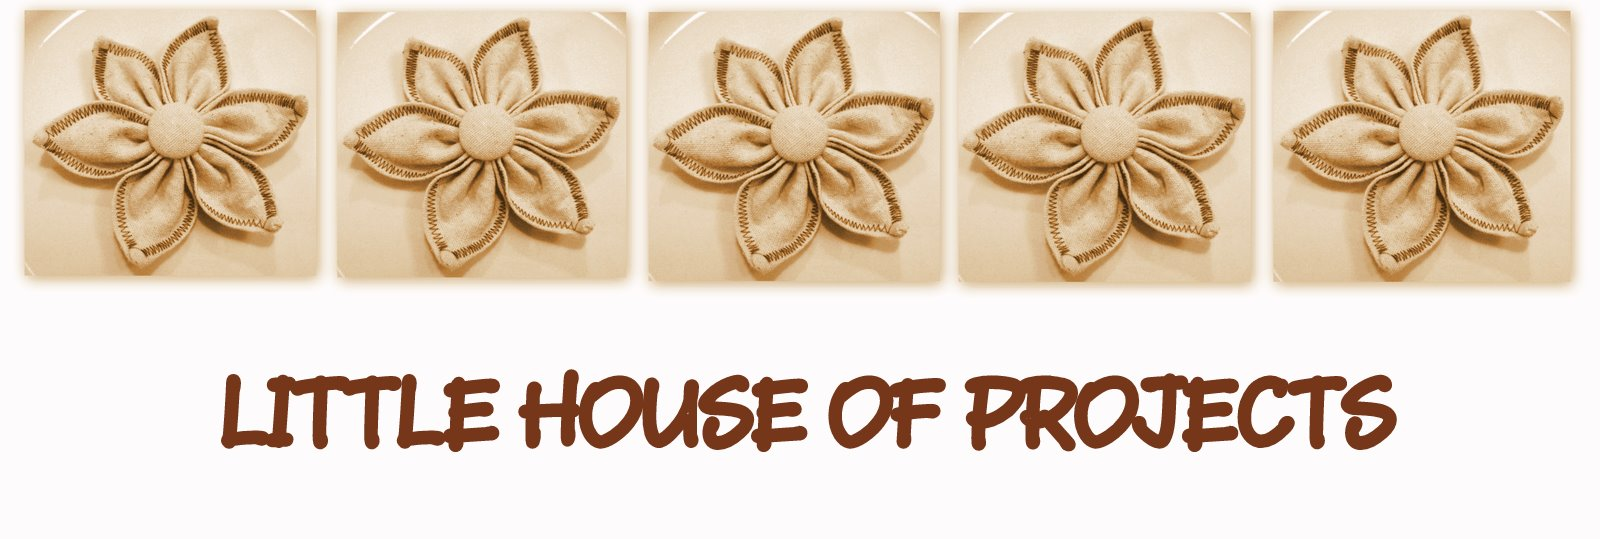 LITTLE HOUSE OF PROJECTS